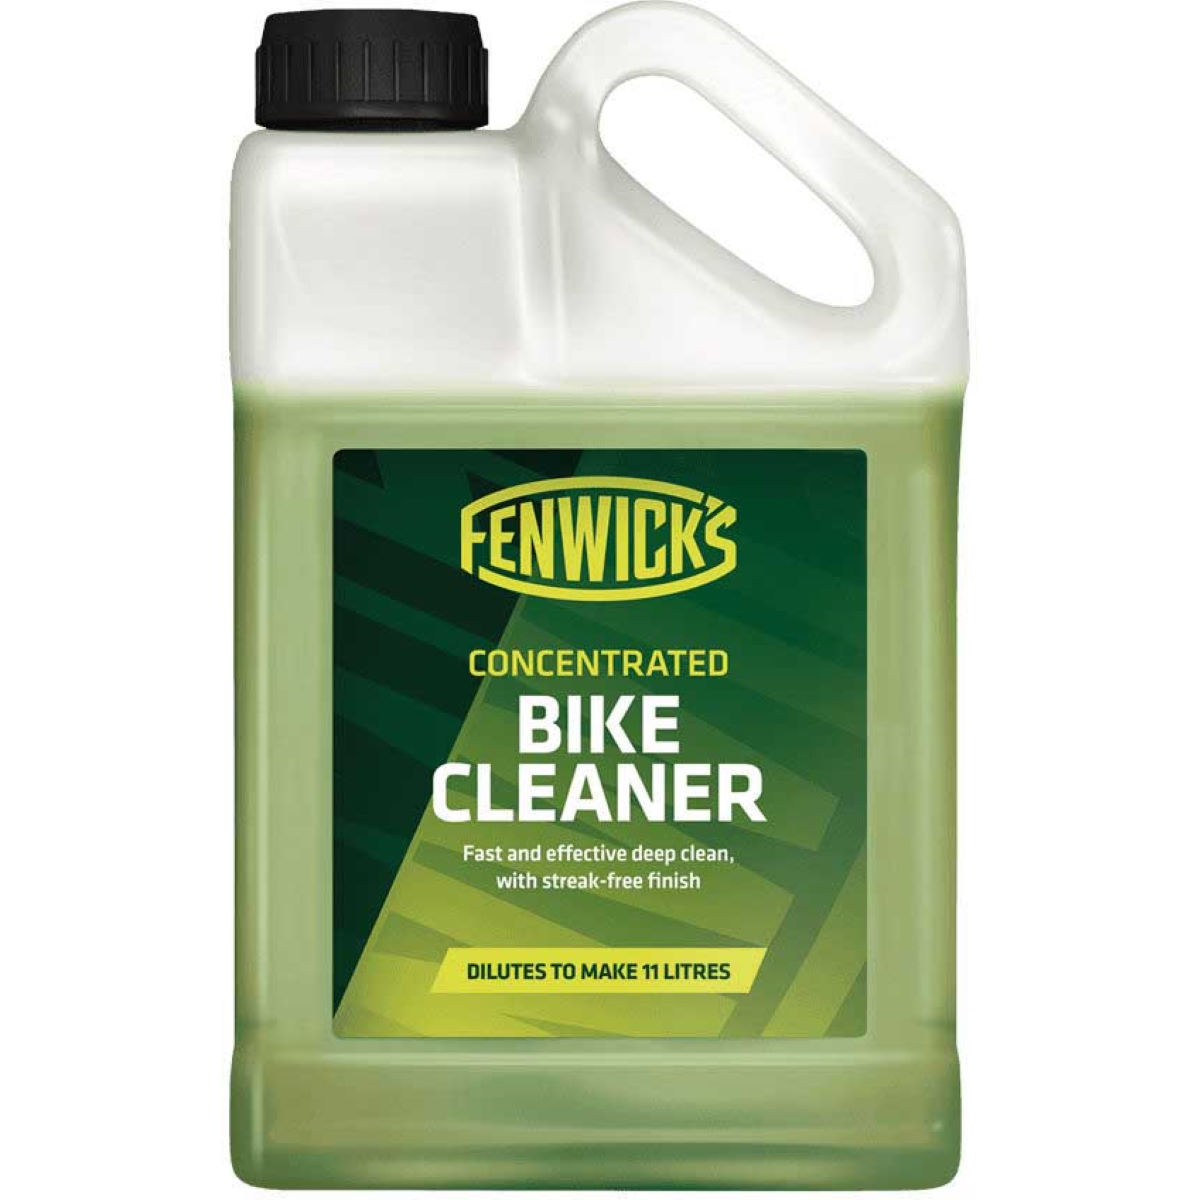 Fenwicks Concentrated Bike Cleaner   Cleaning Products